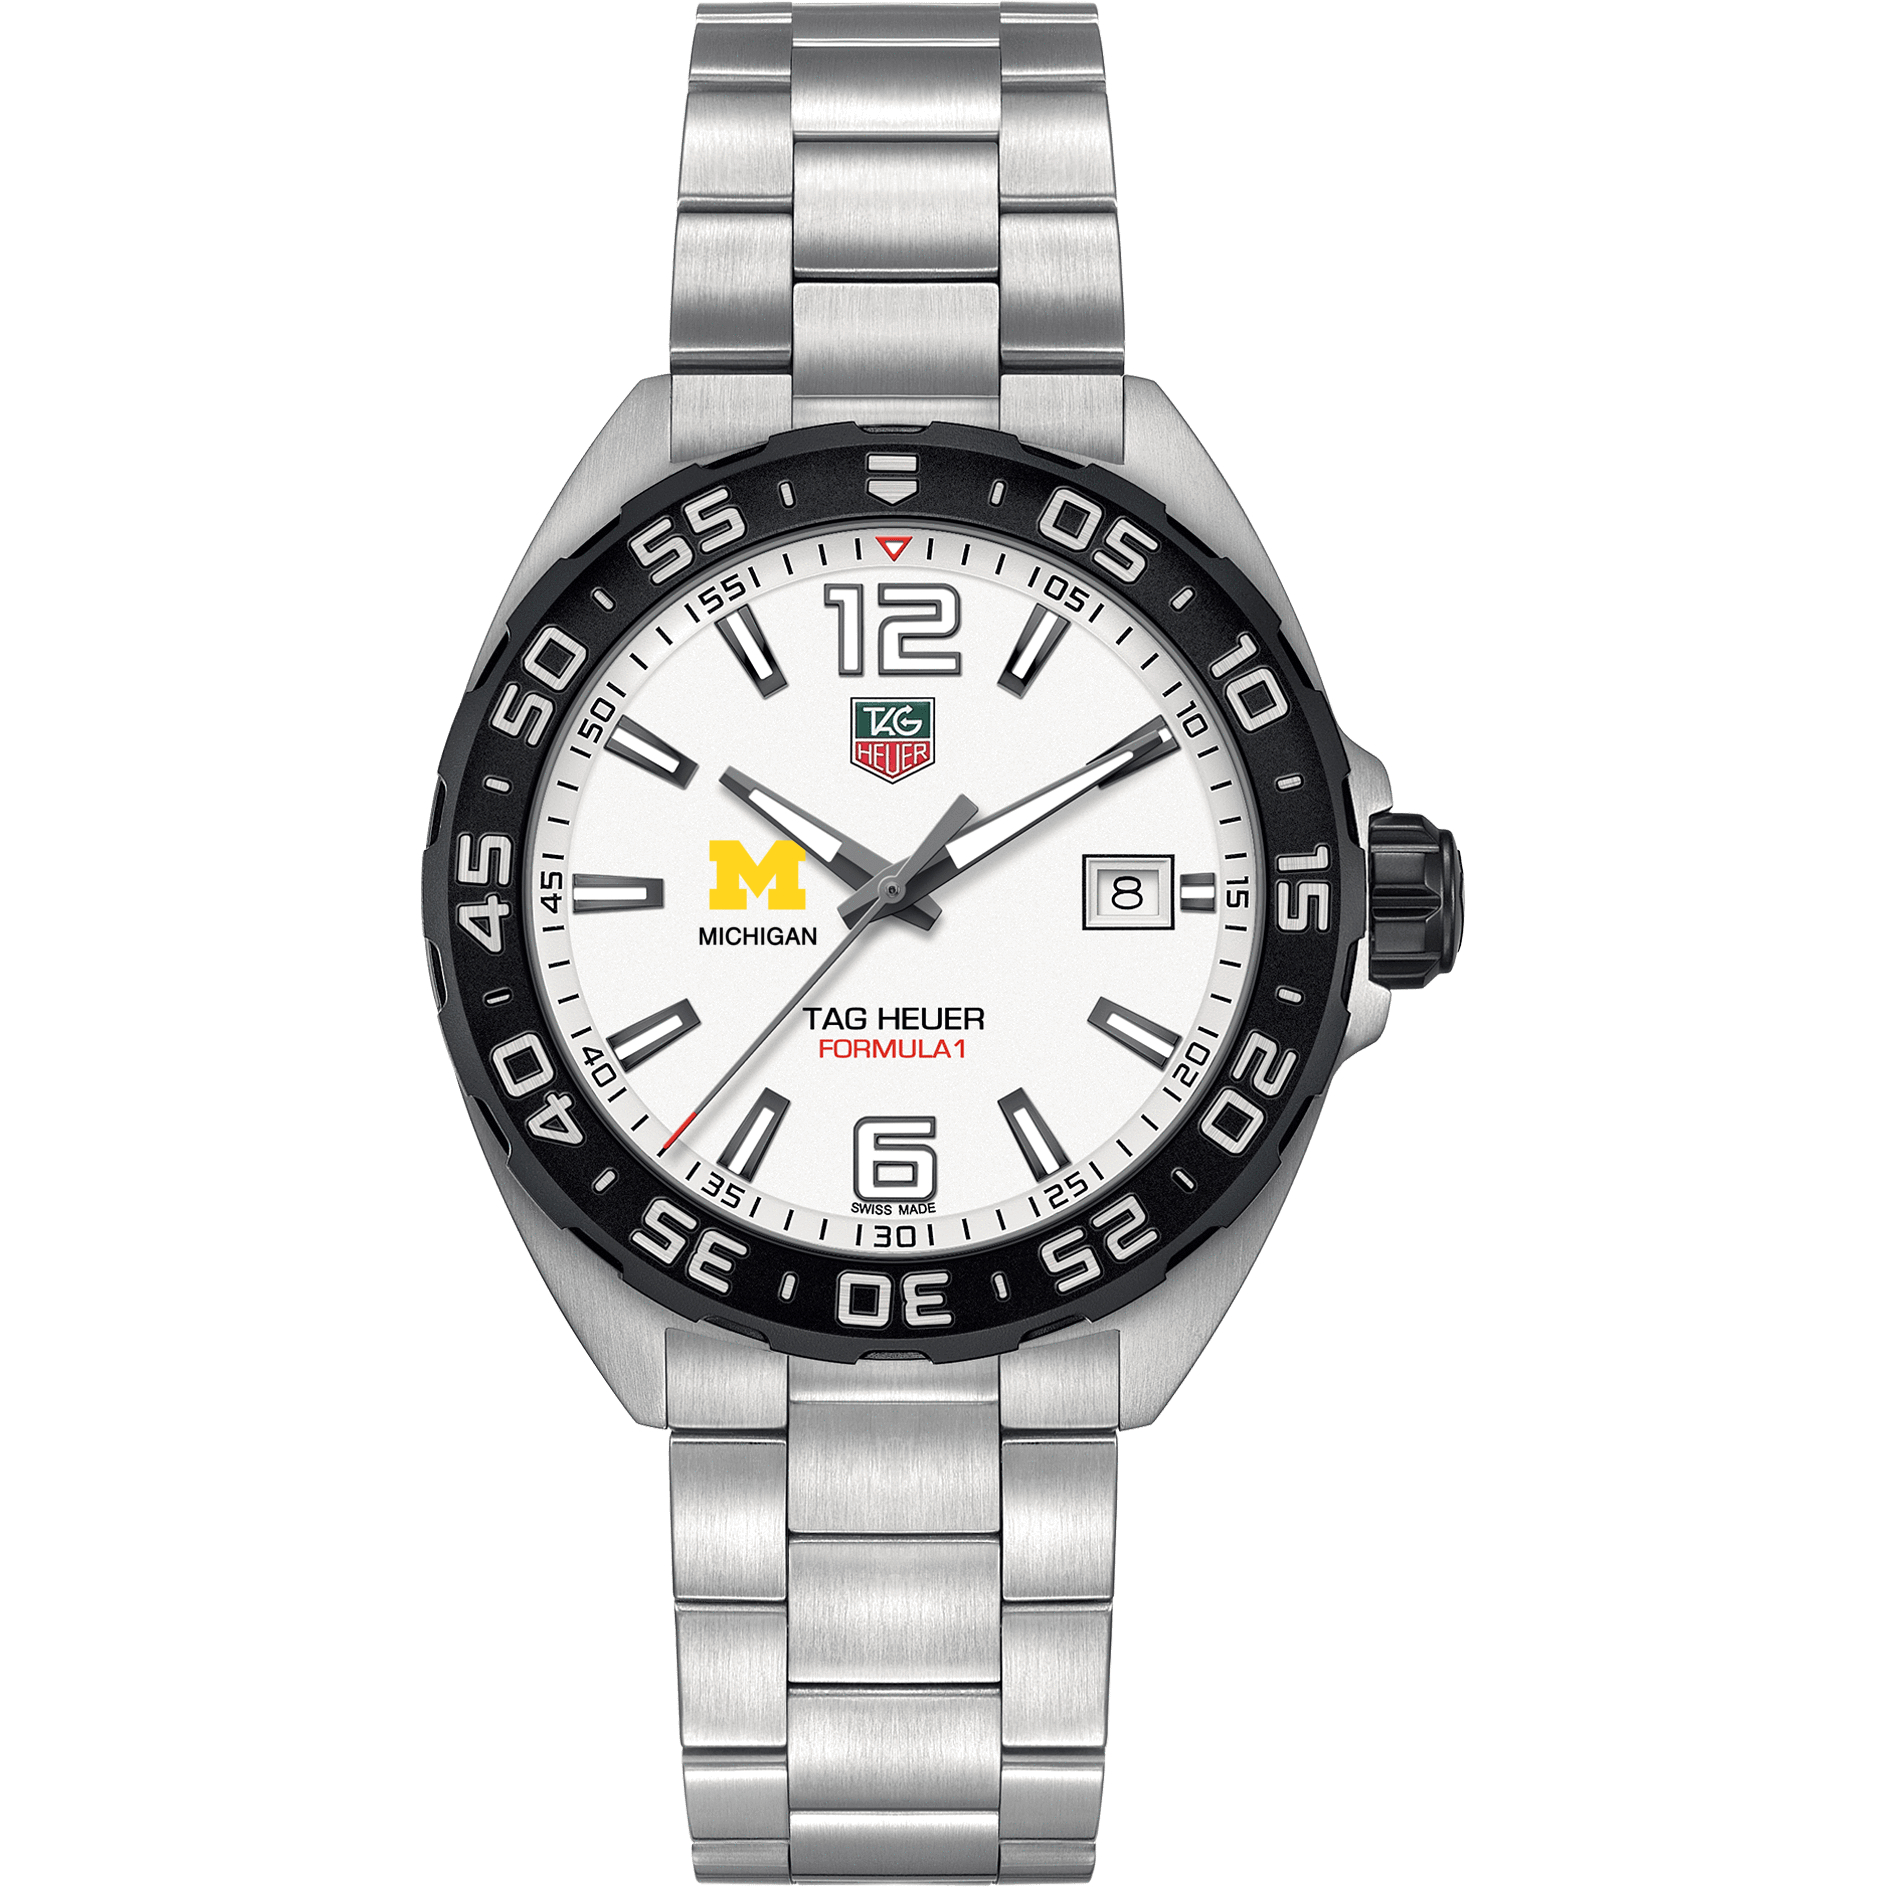 Michigan Men's TAG Heuer Formula 1 - Image 2